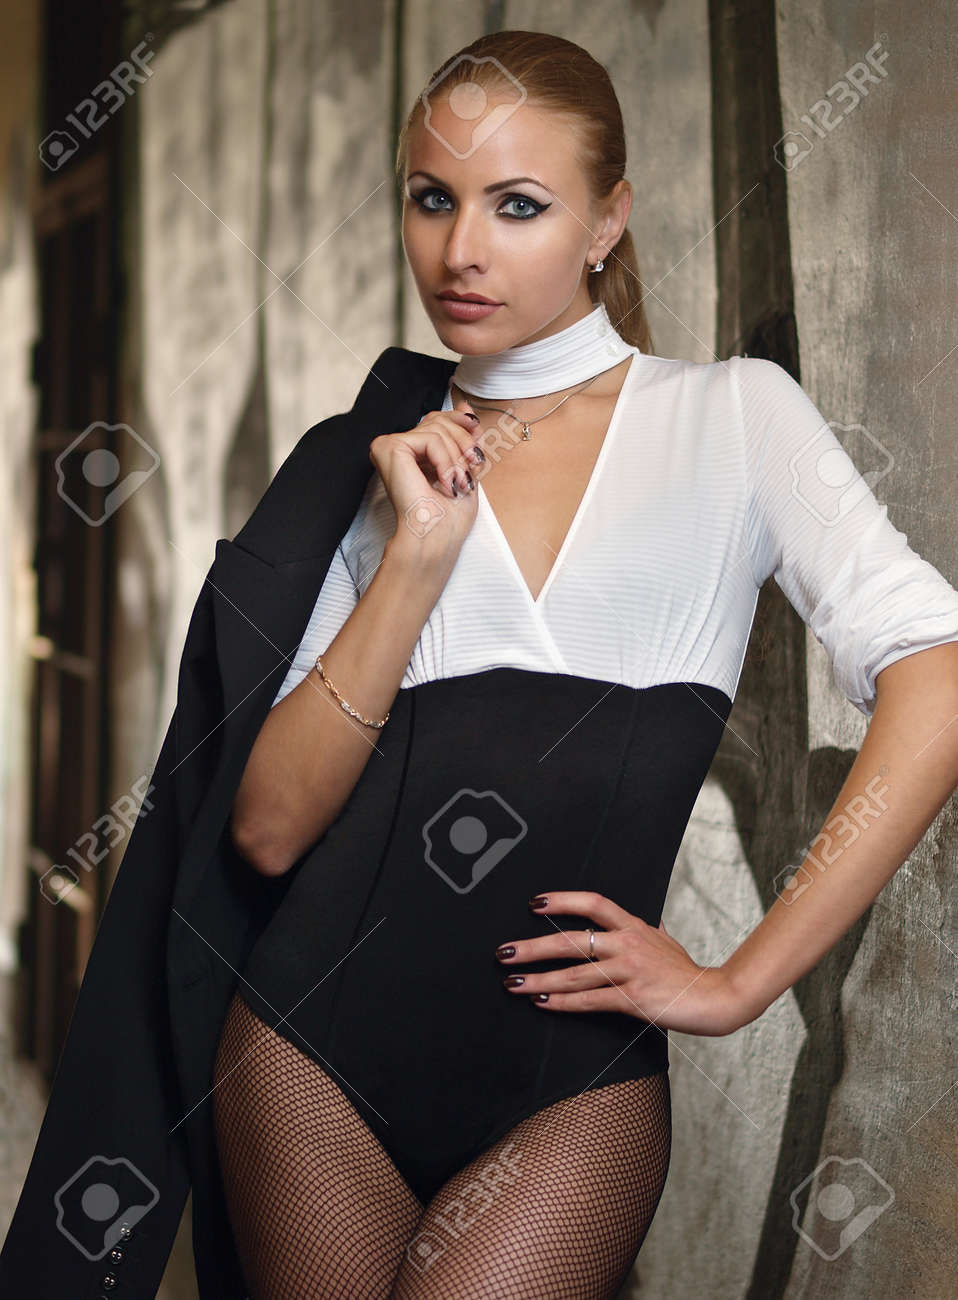 Girl with a jacket Stock Photo - 15777597